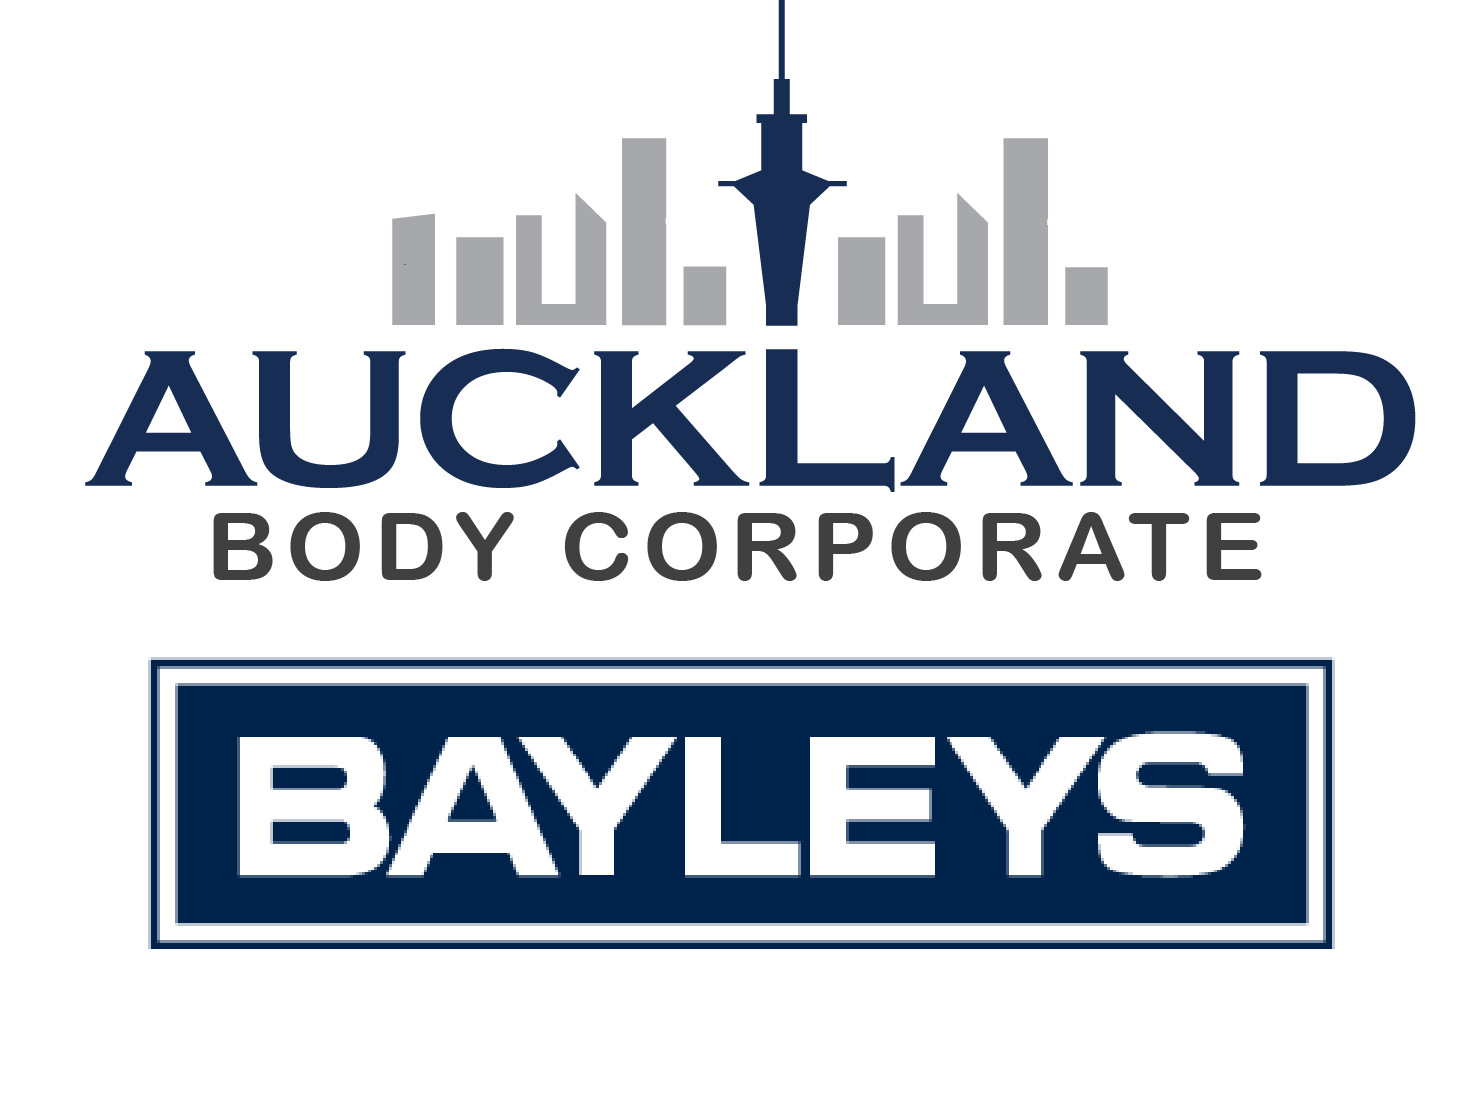 Auckland Body Corporate Bayleys White BG